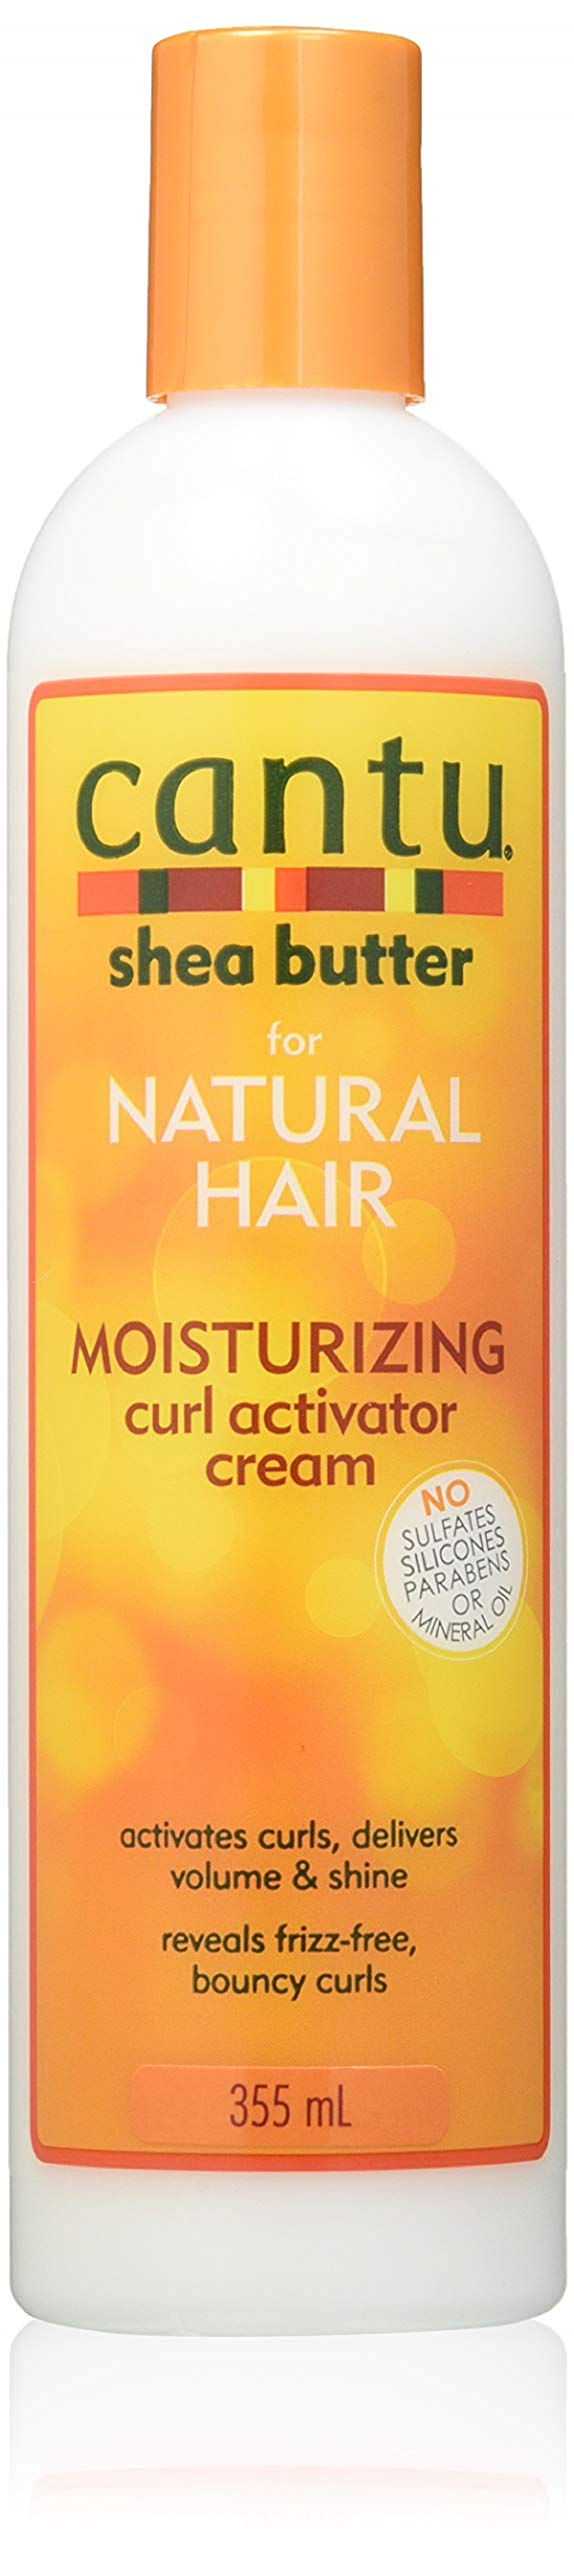 Cantu Shea Butter Curl Activator Cream, 355 ml (Packaging May Vary)